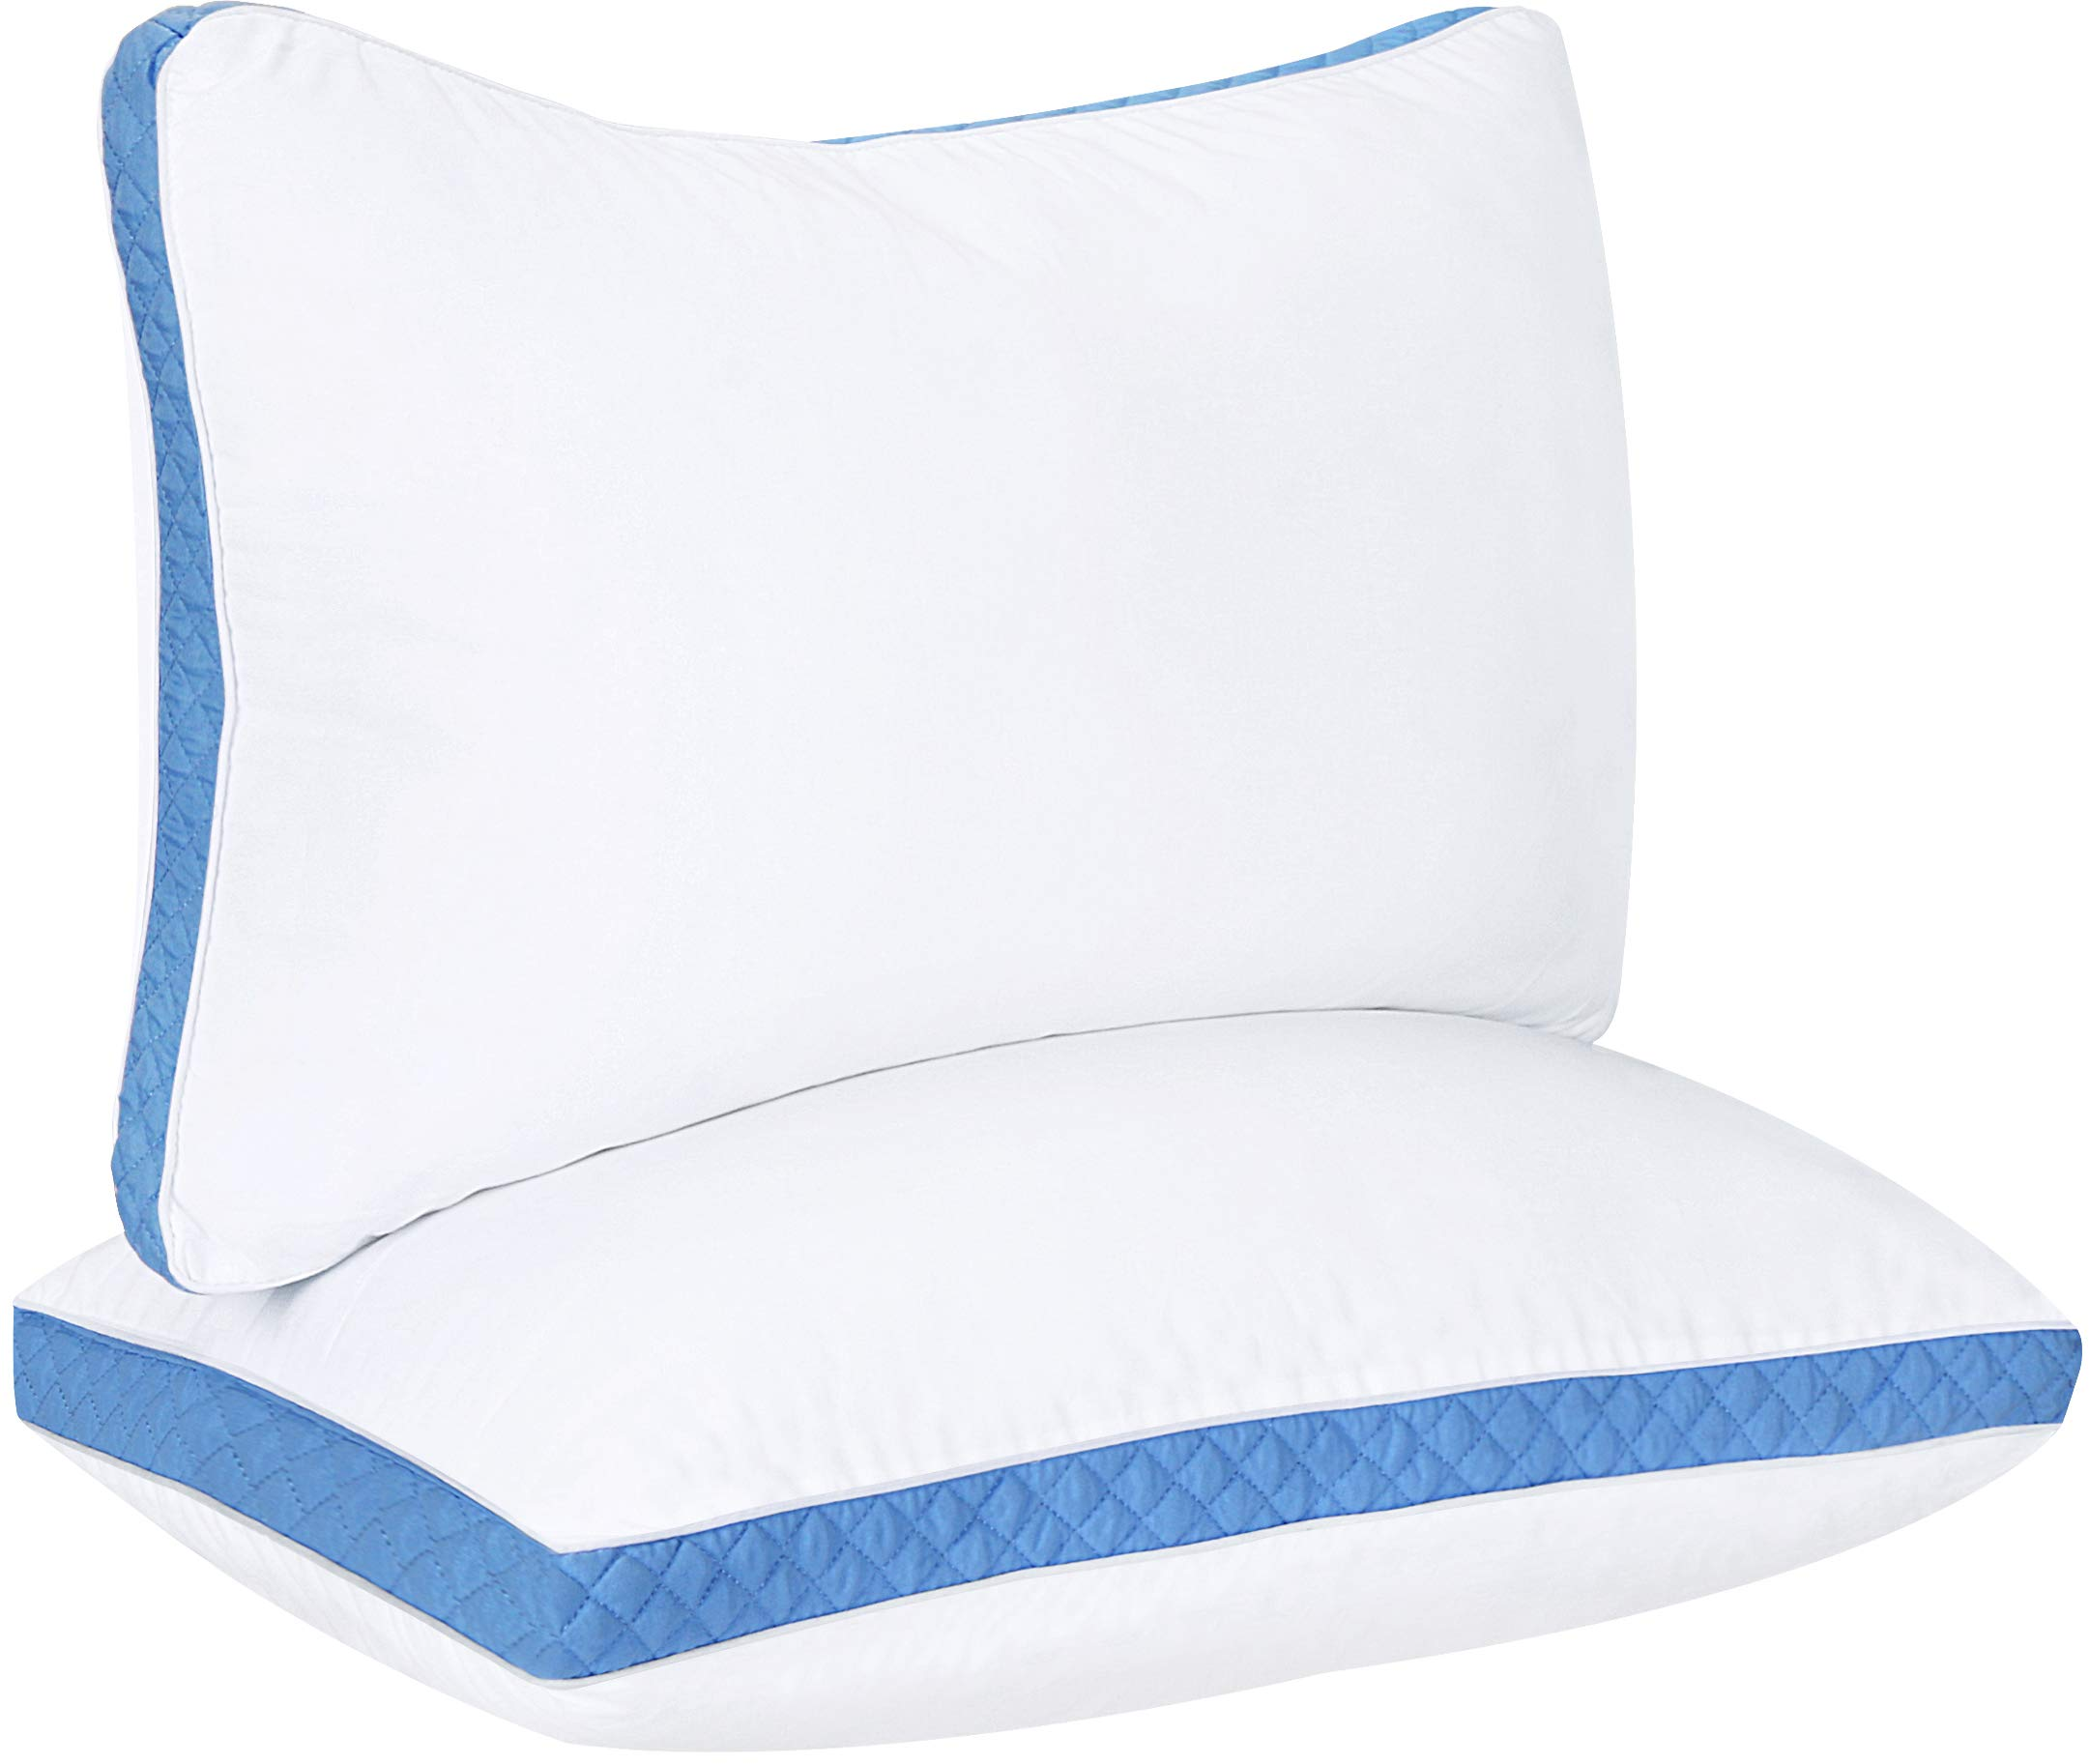 Utopia Bedding Gusseted Quilted Premium